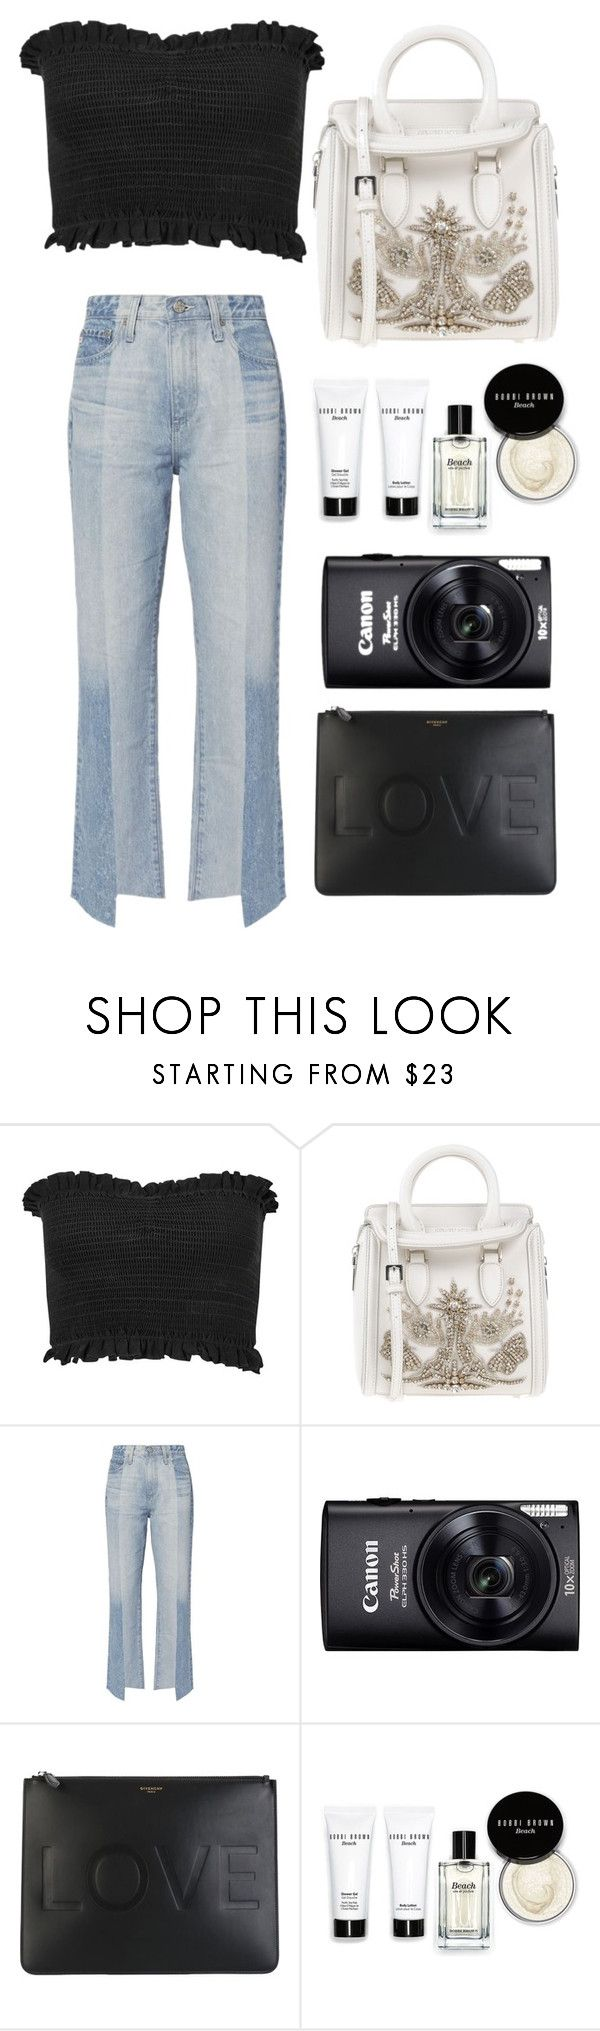 """""""Zedd, Alessia Cara - Stay"""" by petitaprenent on Polyvore featuring Miss Selfridge, Alexander McQueen, AG Adriano Goldschmied, Givenchy and Bobbi Brown Cosmetics"""